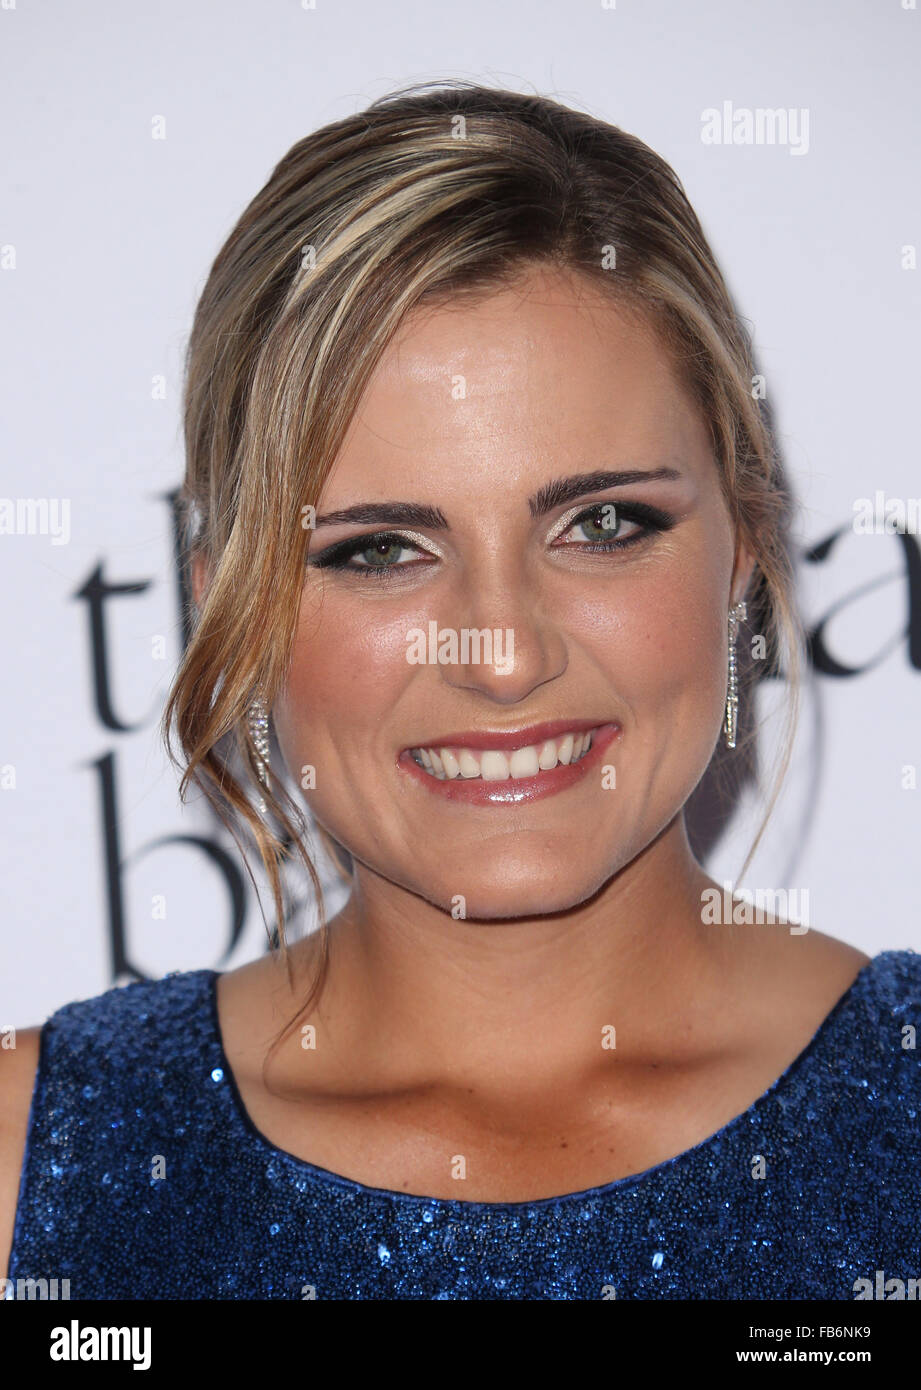 2nd Annual Diamond Ball 2015 Red Carpet Featuring Lexi Thompson Where Santa Monica California United States When